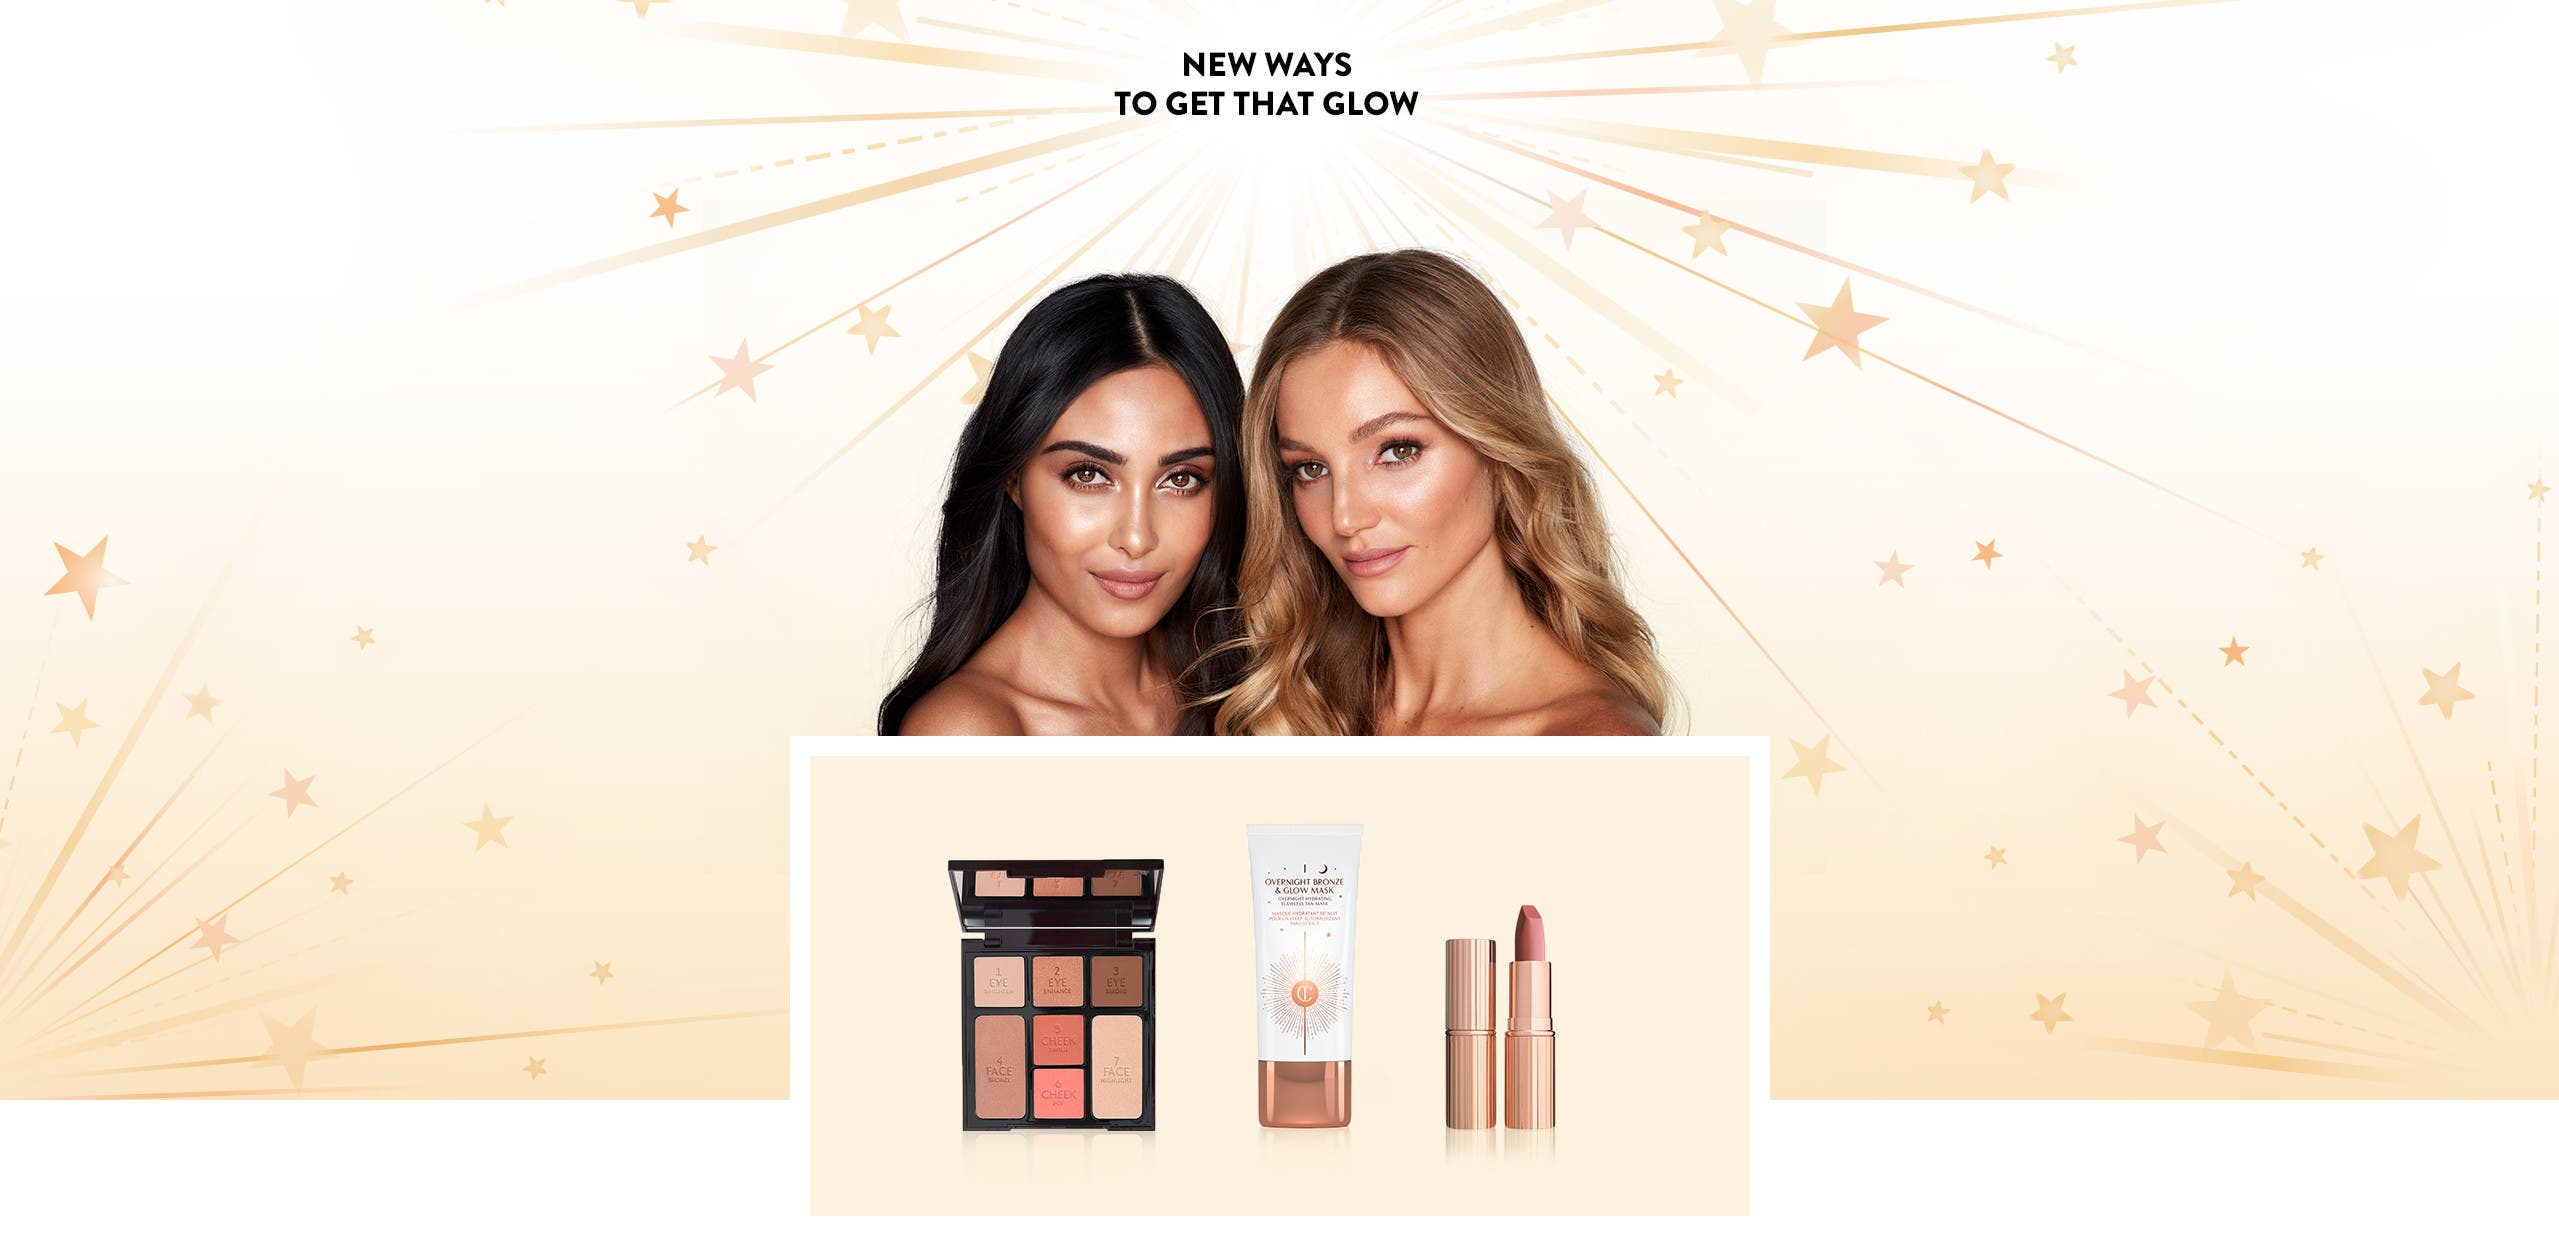 Charlotte Tilbury: New Ways to Get That Glow. Only at Nordstrom.